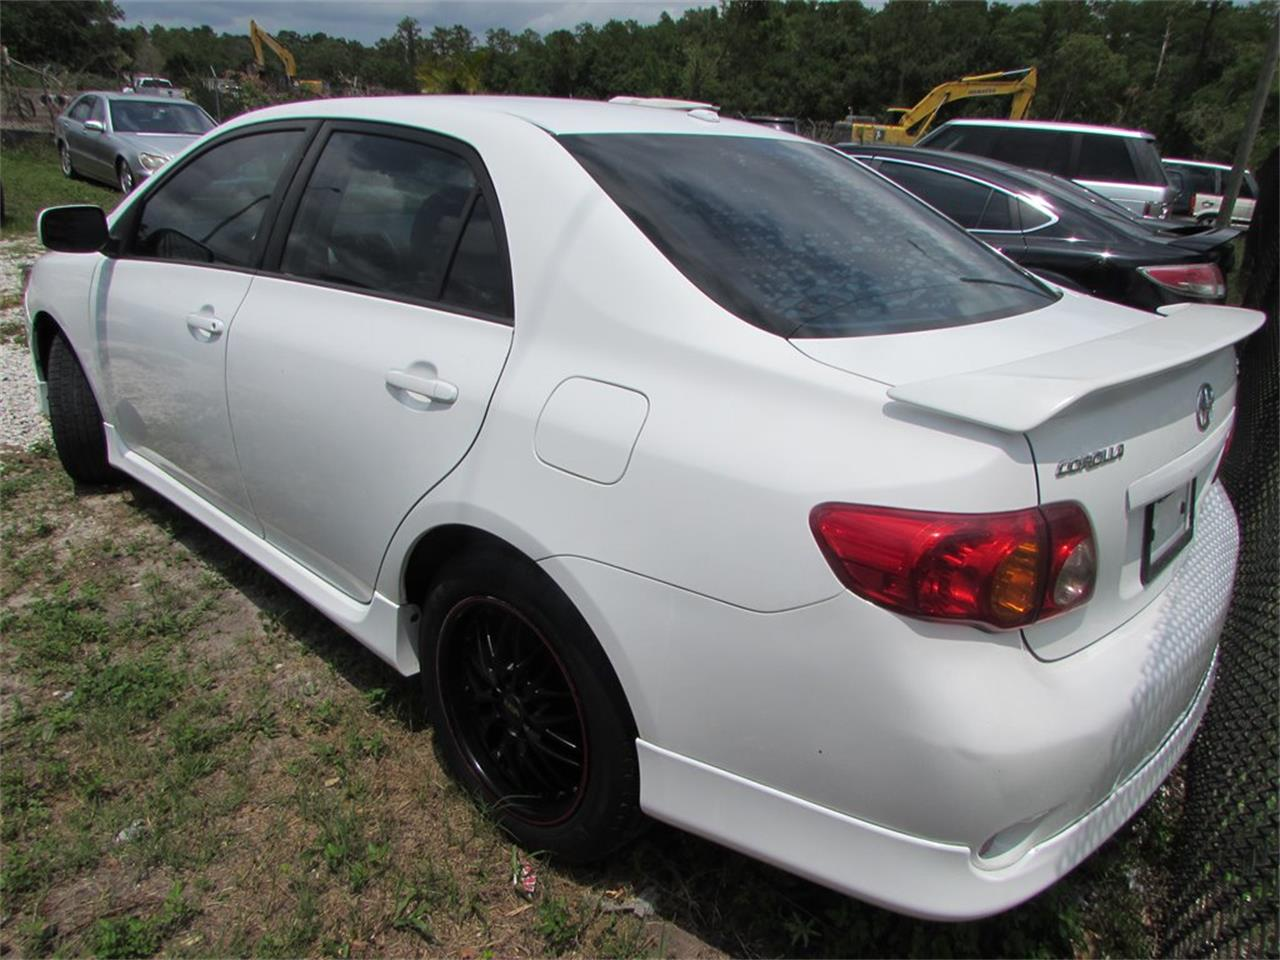 Large Picture of 2009 Corolla located in Orlando Florida - $7,700.00 - Q282